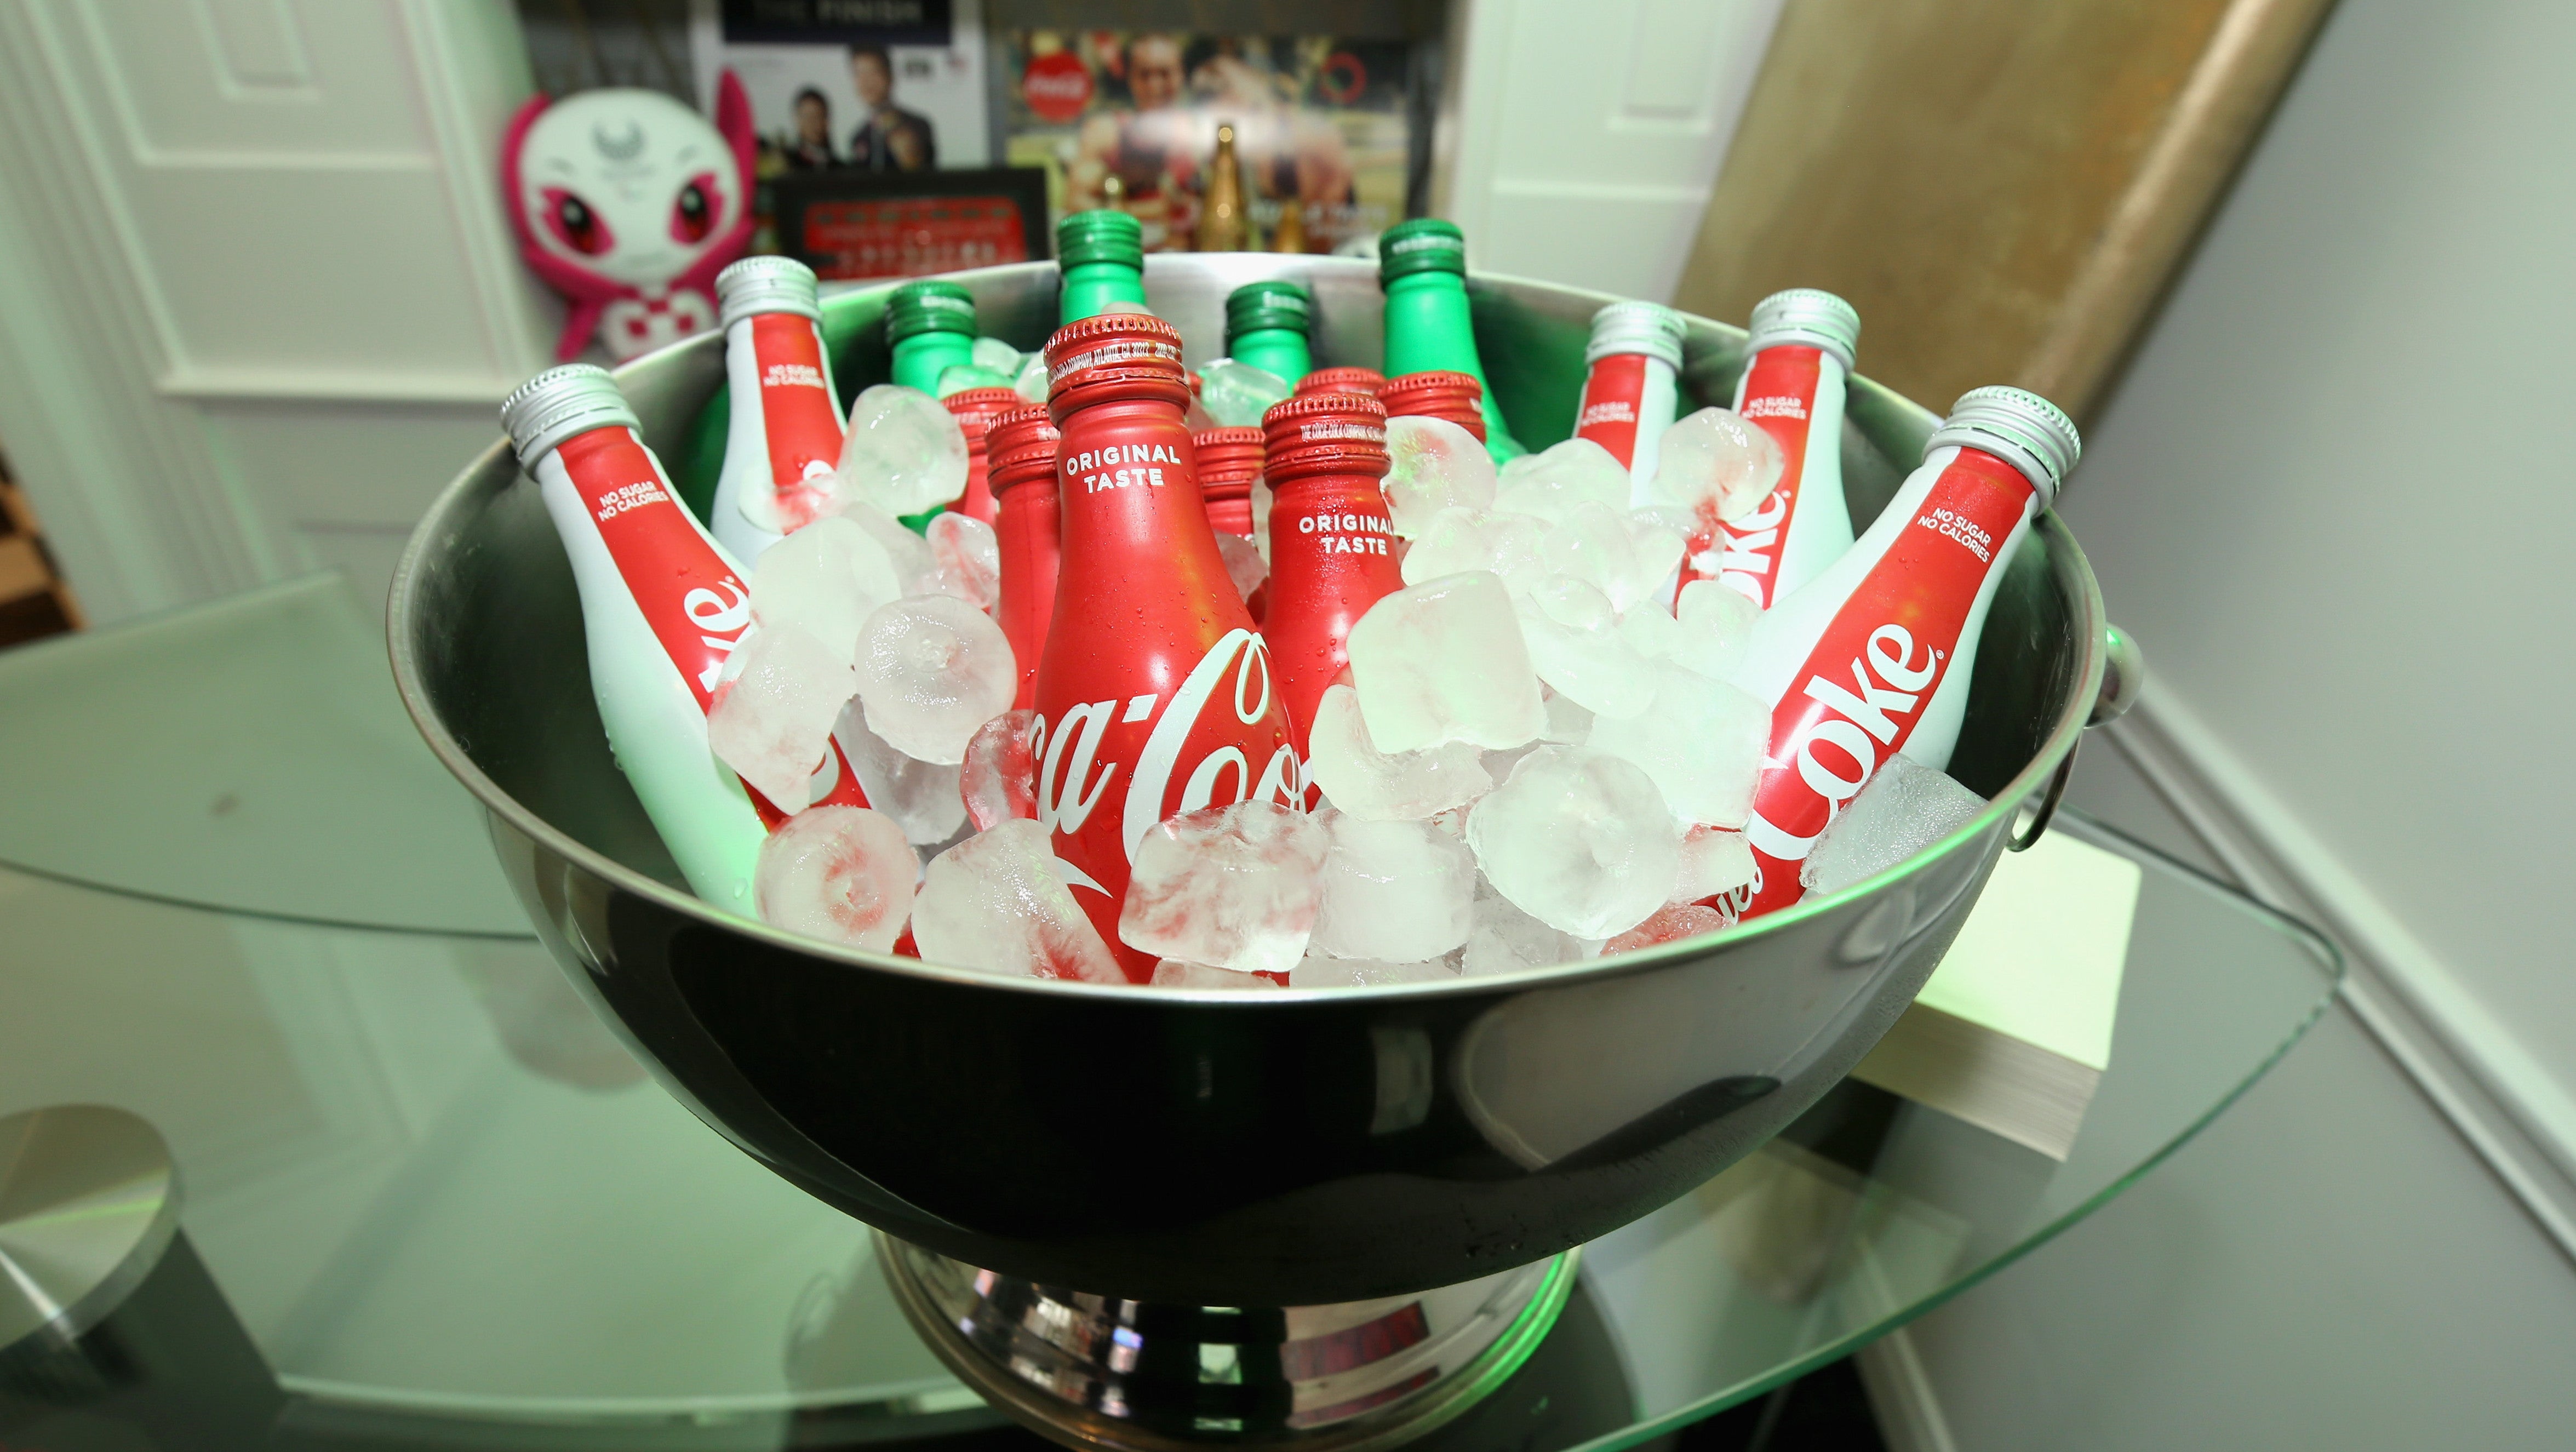 Coca-Cola Can Terminate Health Research It Funds, Investigation Finds